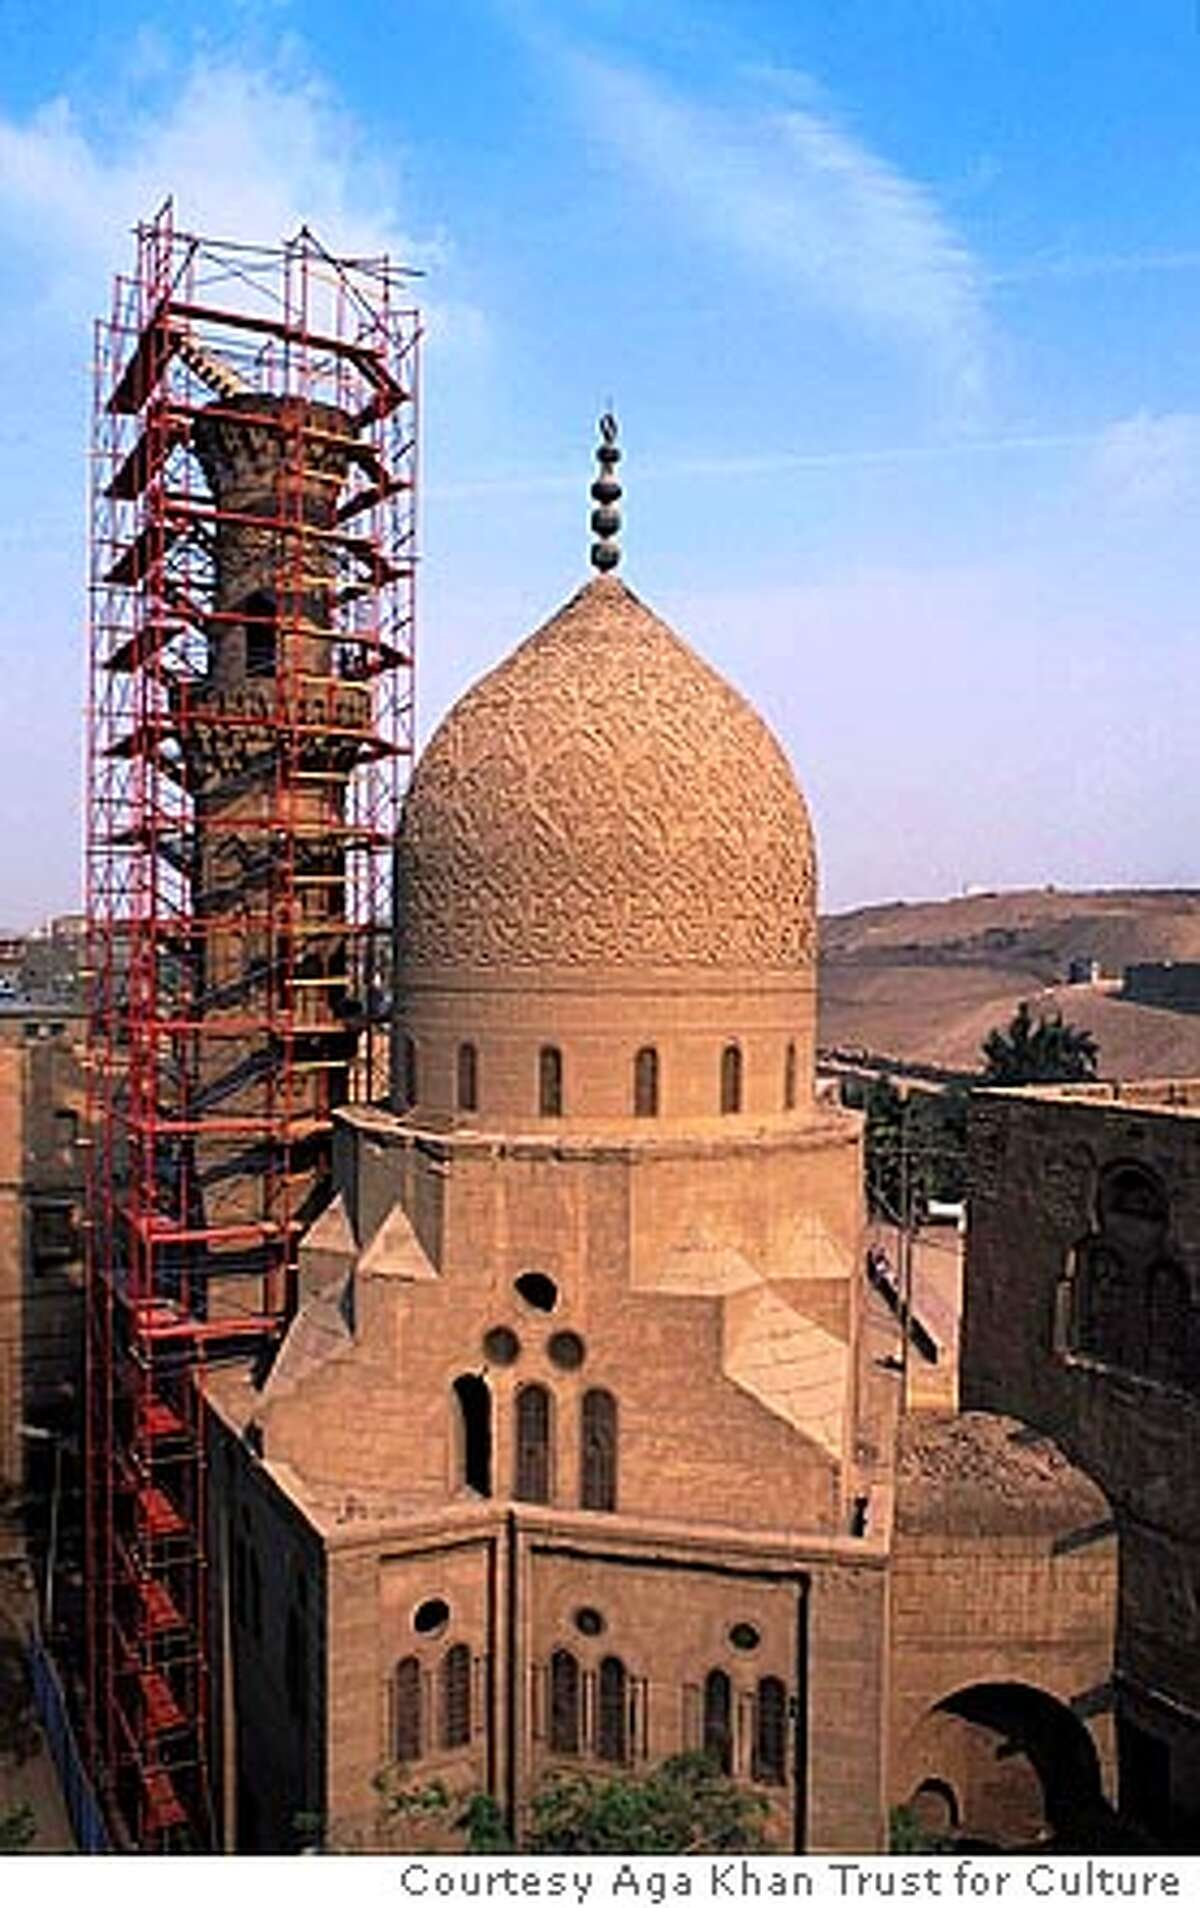 Mosque in Cairo Courtesy Aga Khan Trust for Culture